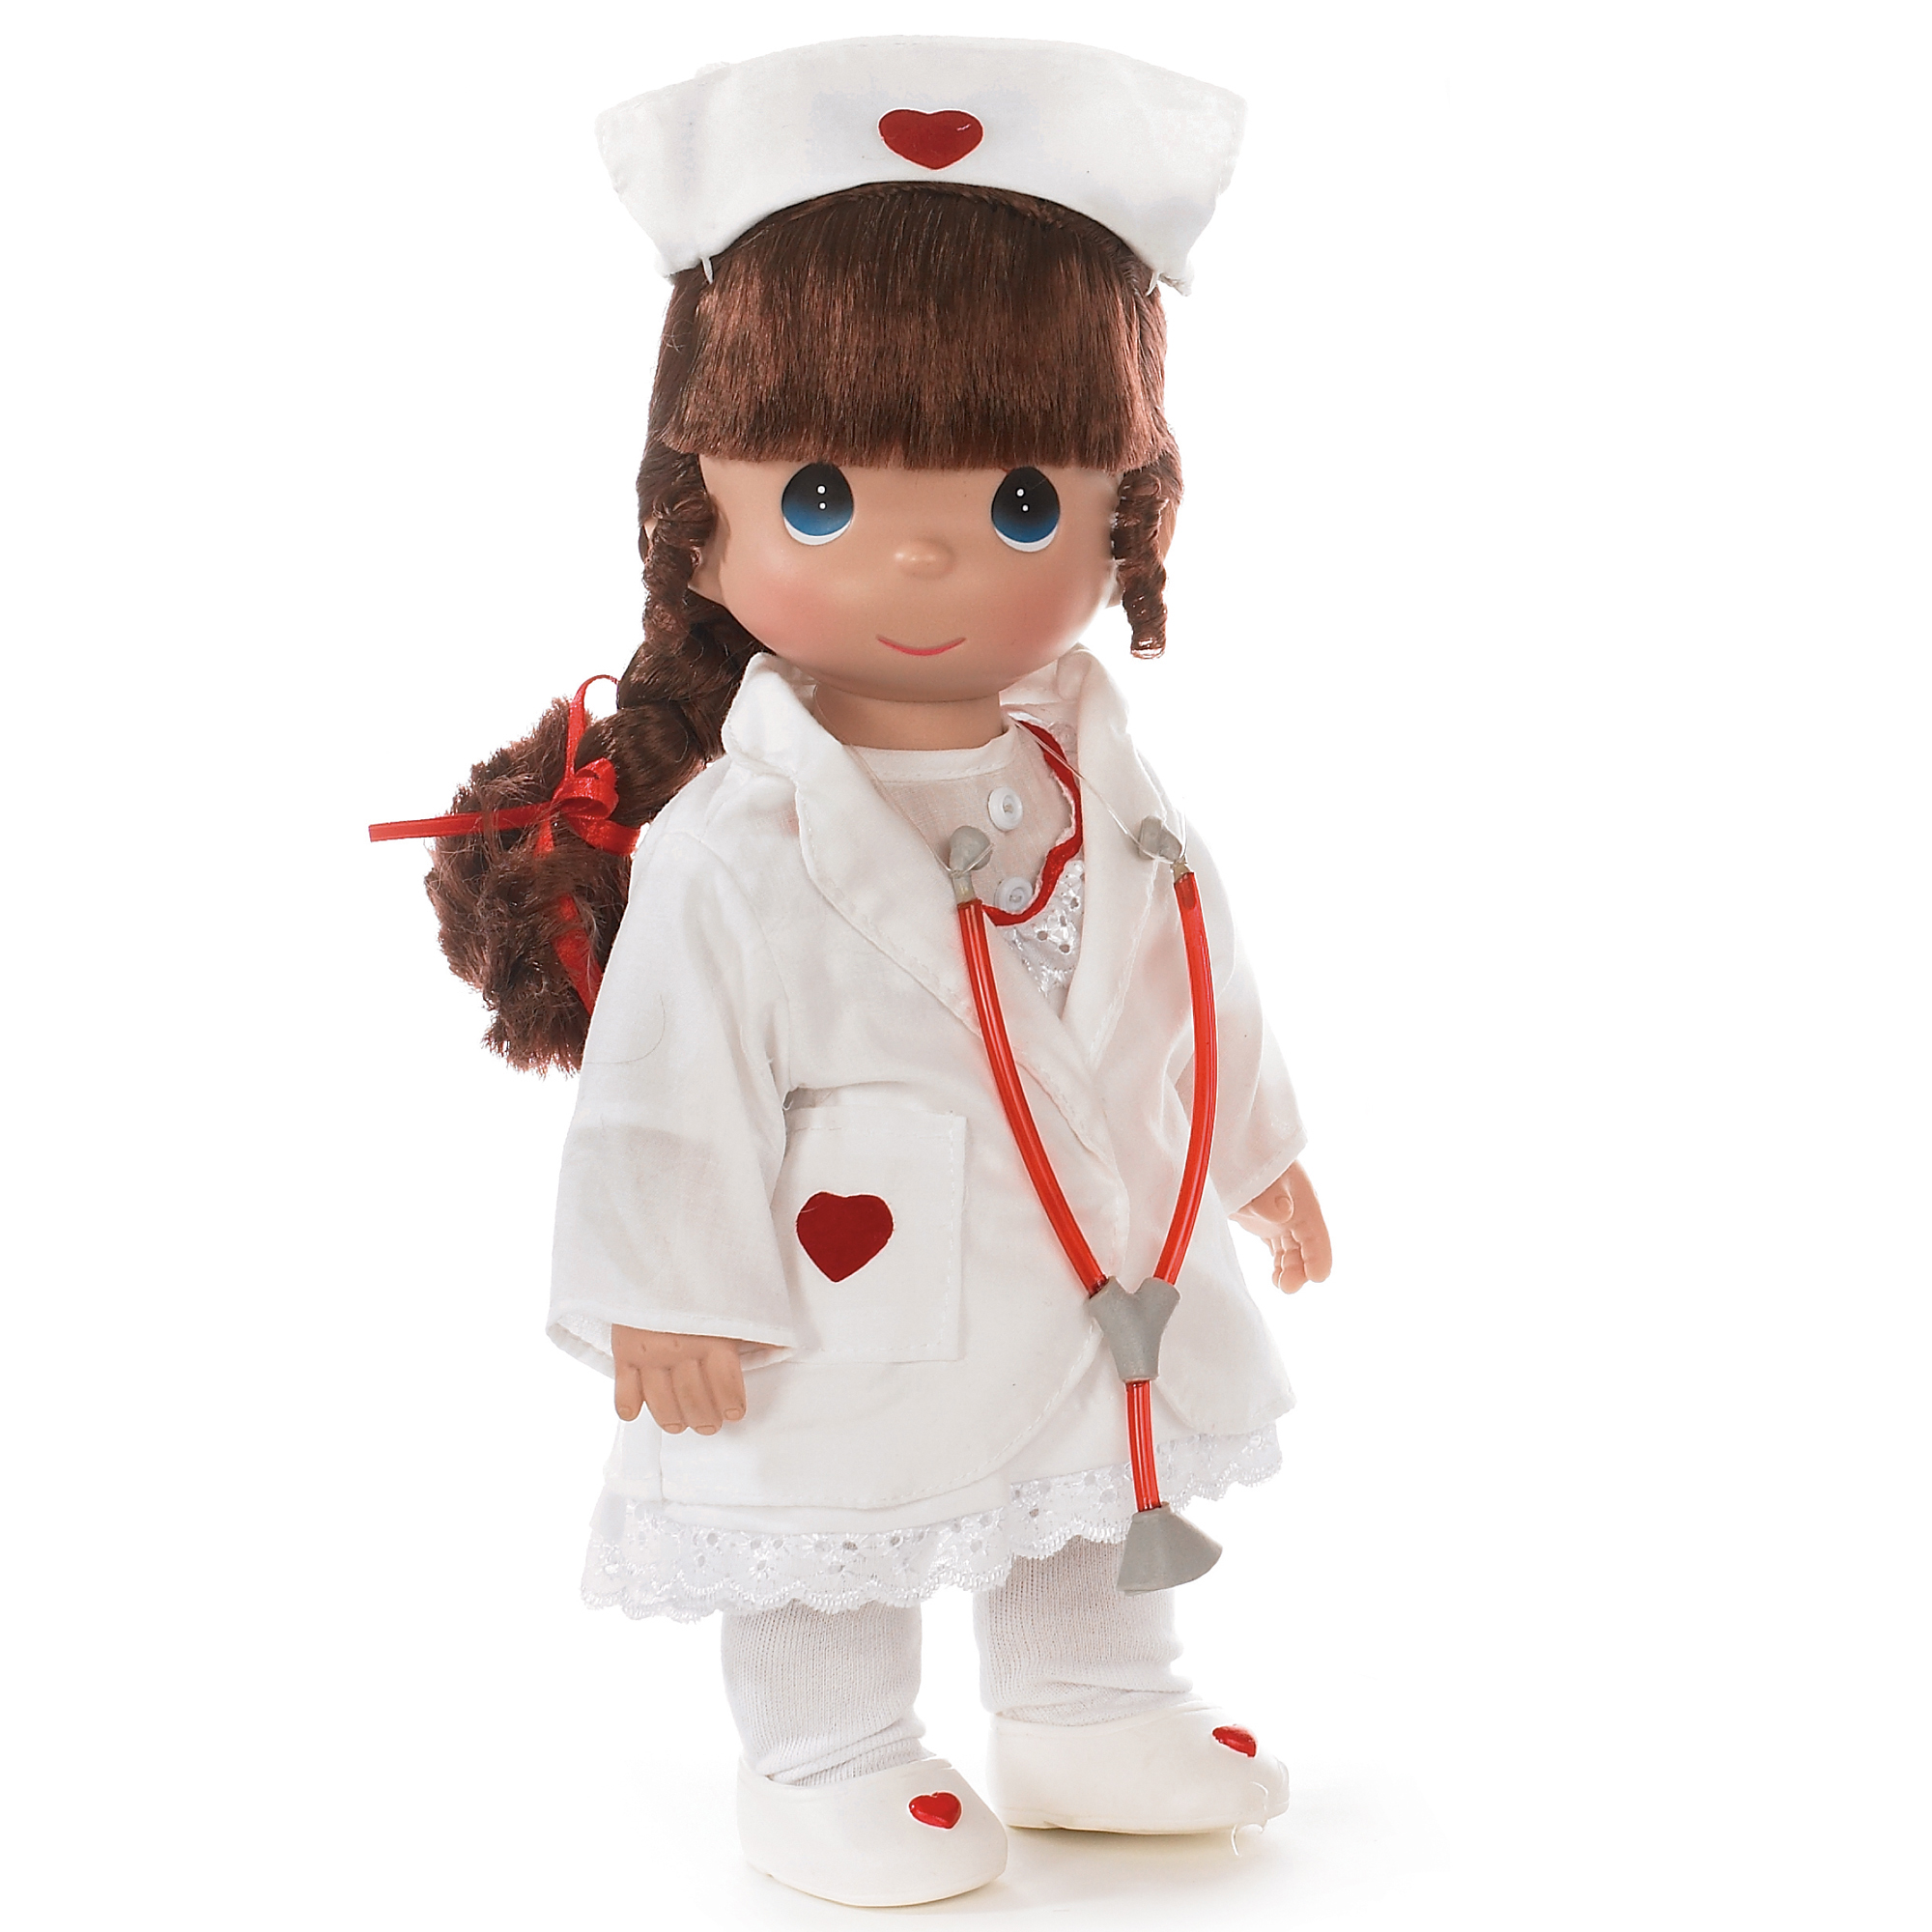 Precious Moments Dolls by The Doll Maker, Linda Rick, Loving Touch Nurse, Brunette, 12 inch doll